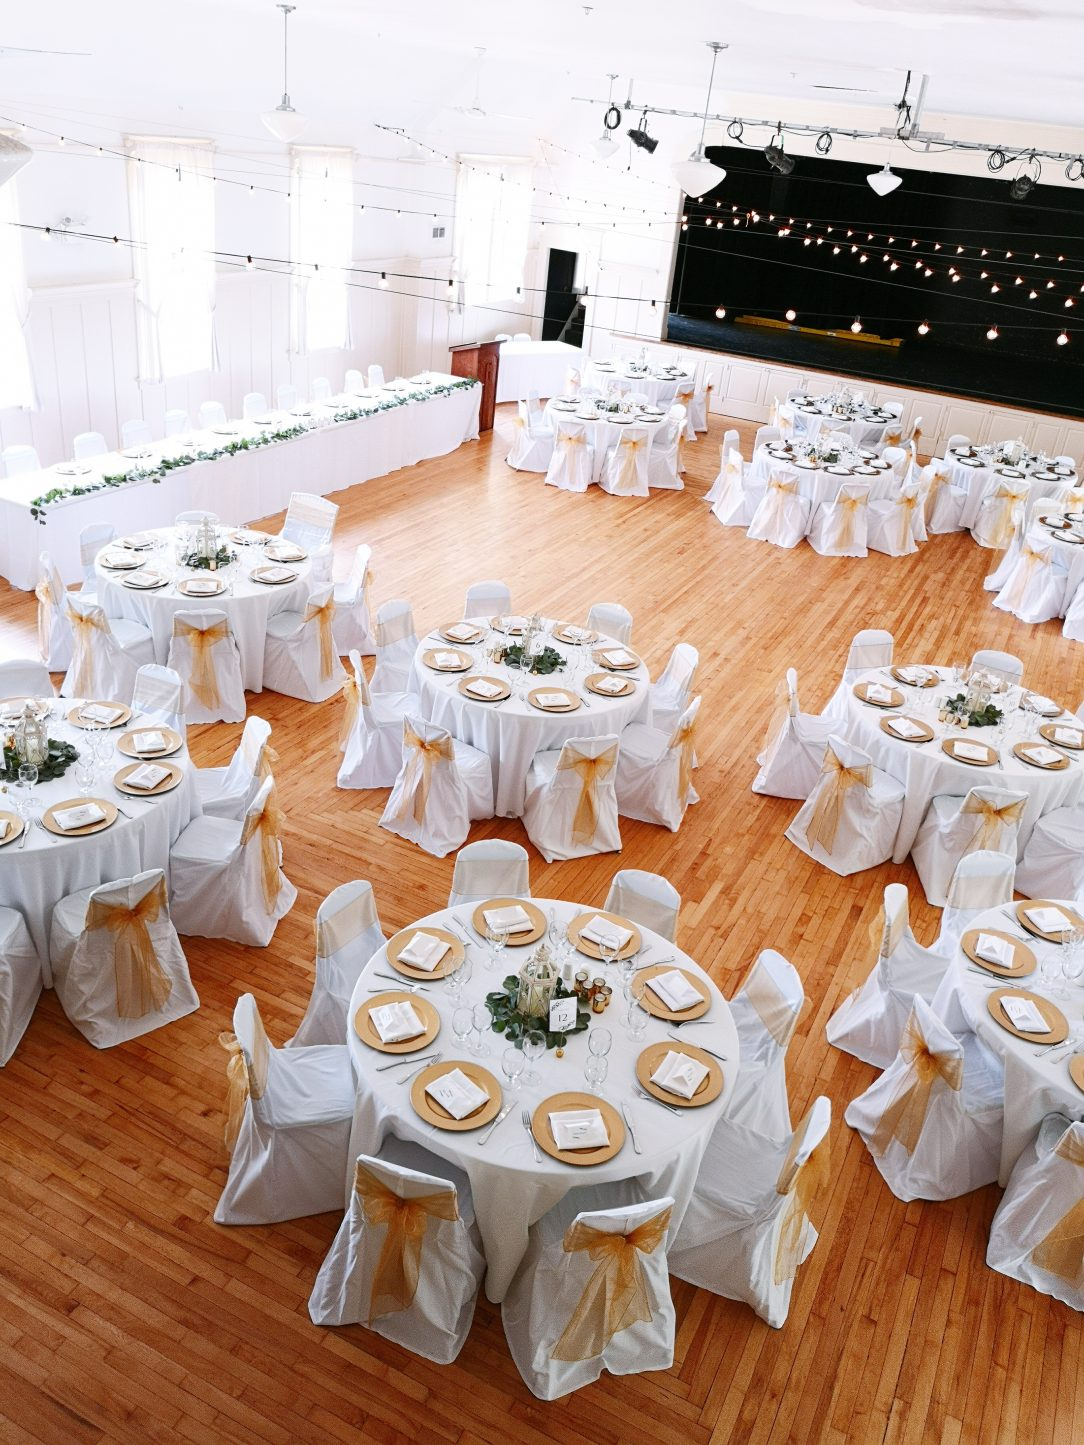 chair cover rentals langley big lots kitchen chairs deanna kelly fort community hall jack jill weddings